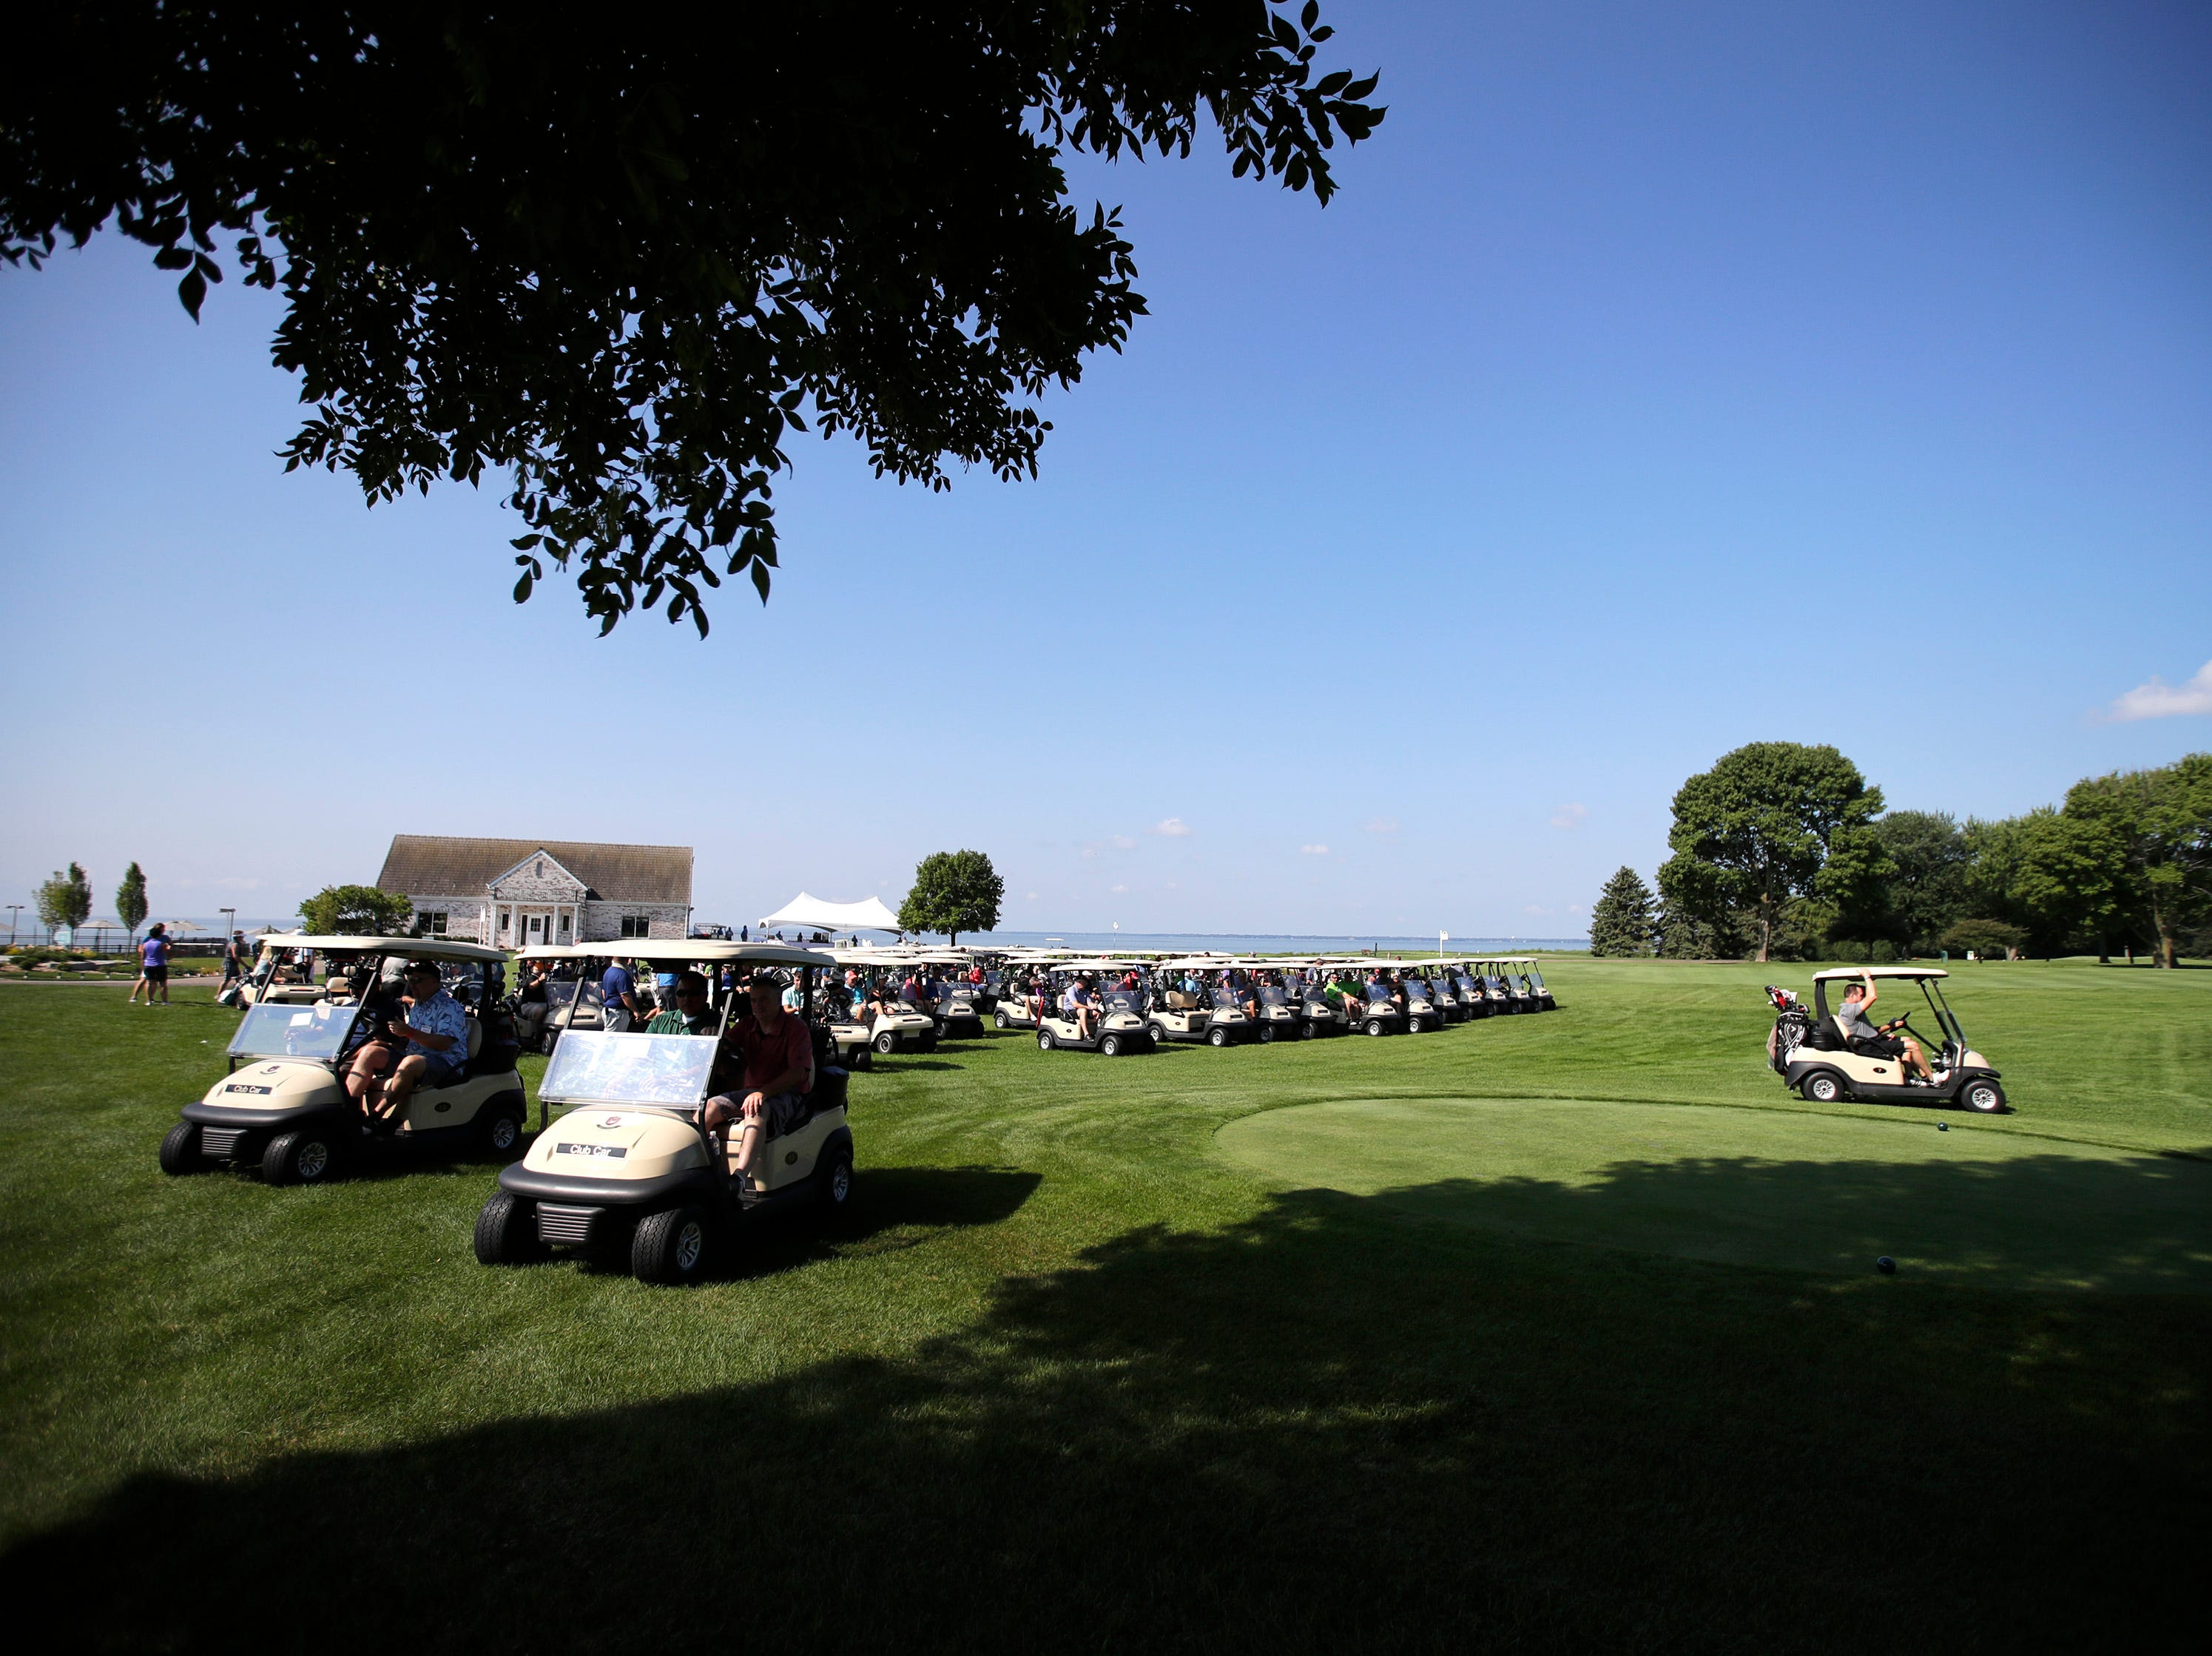 A scramble gets the U.S. Venture Open started Wednesday, Aug. 8, 2018, at North Shore Golf Club in Menasha, Wis.Danny Damiani/USA TODAY NETWORK-Wisconsin